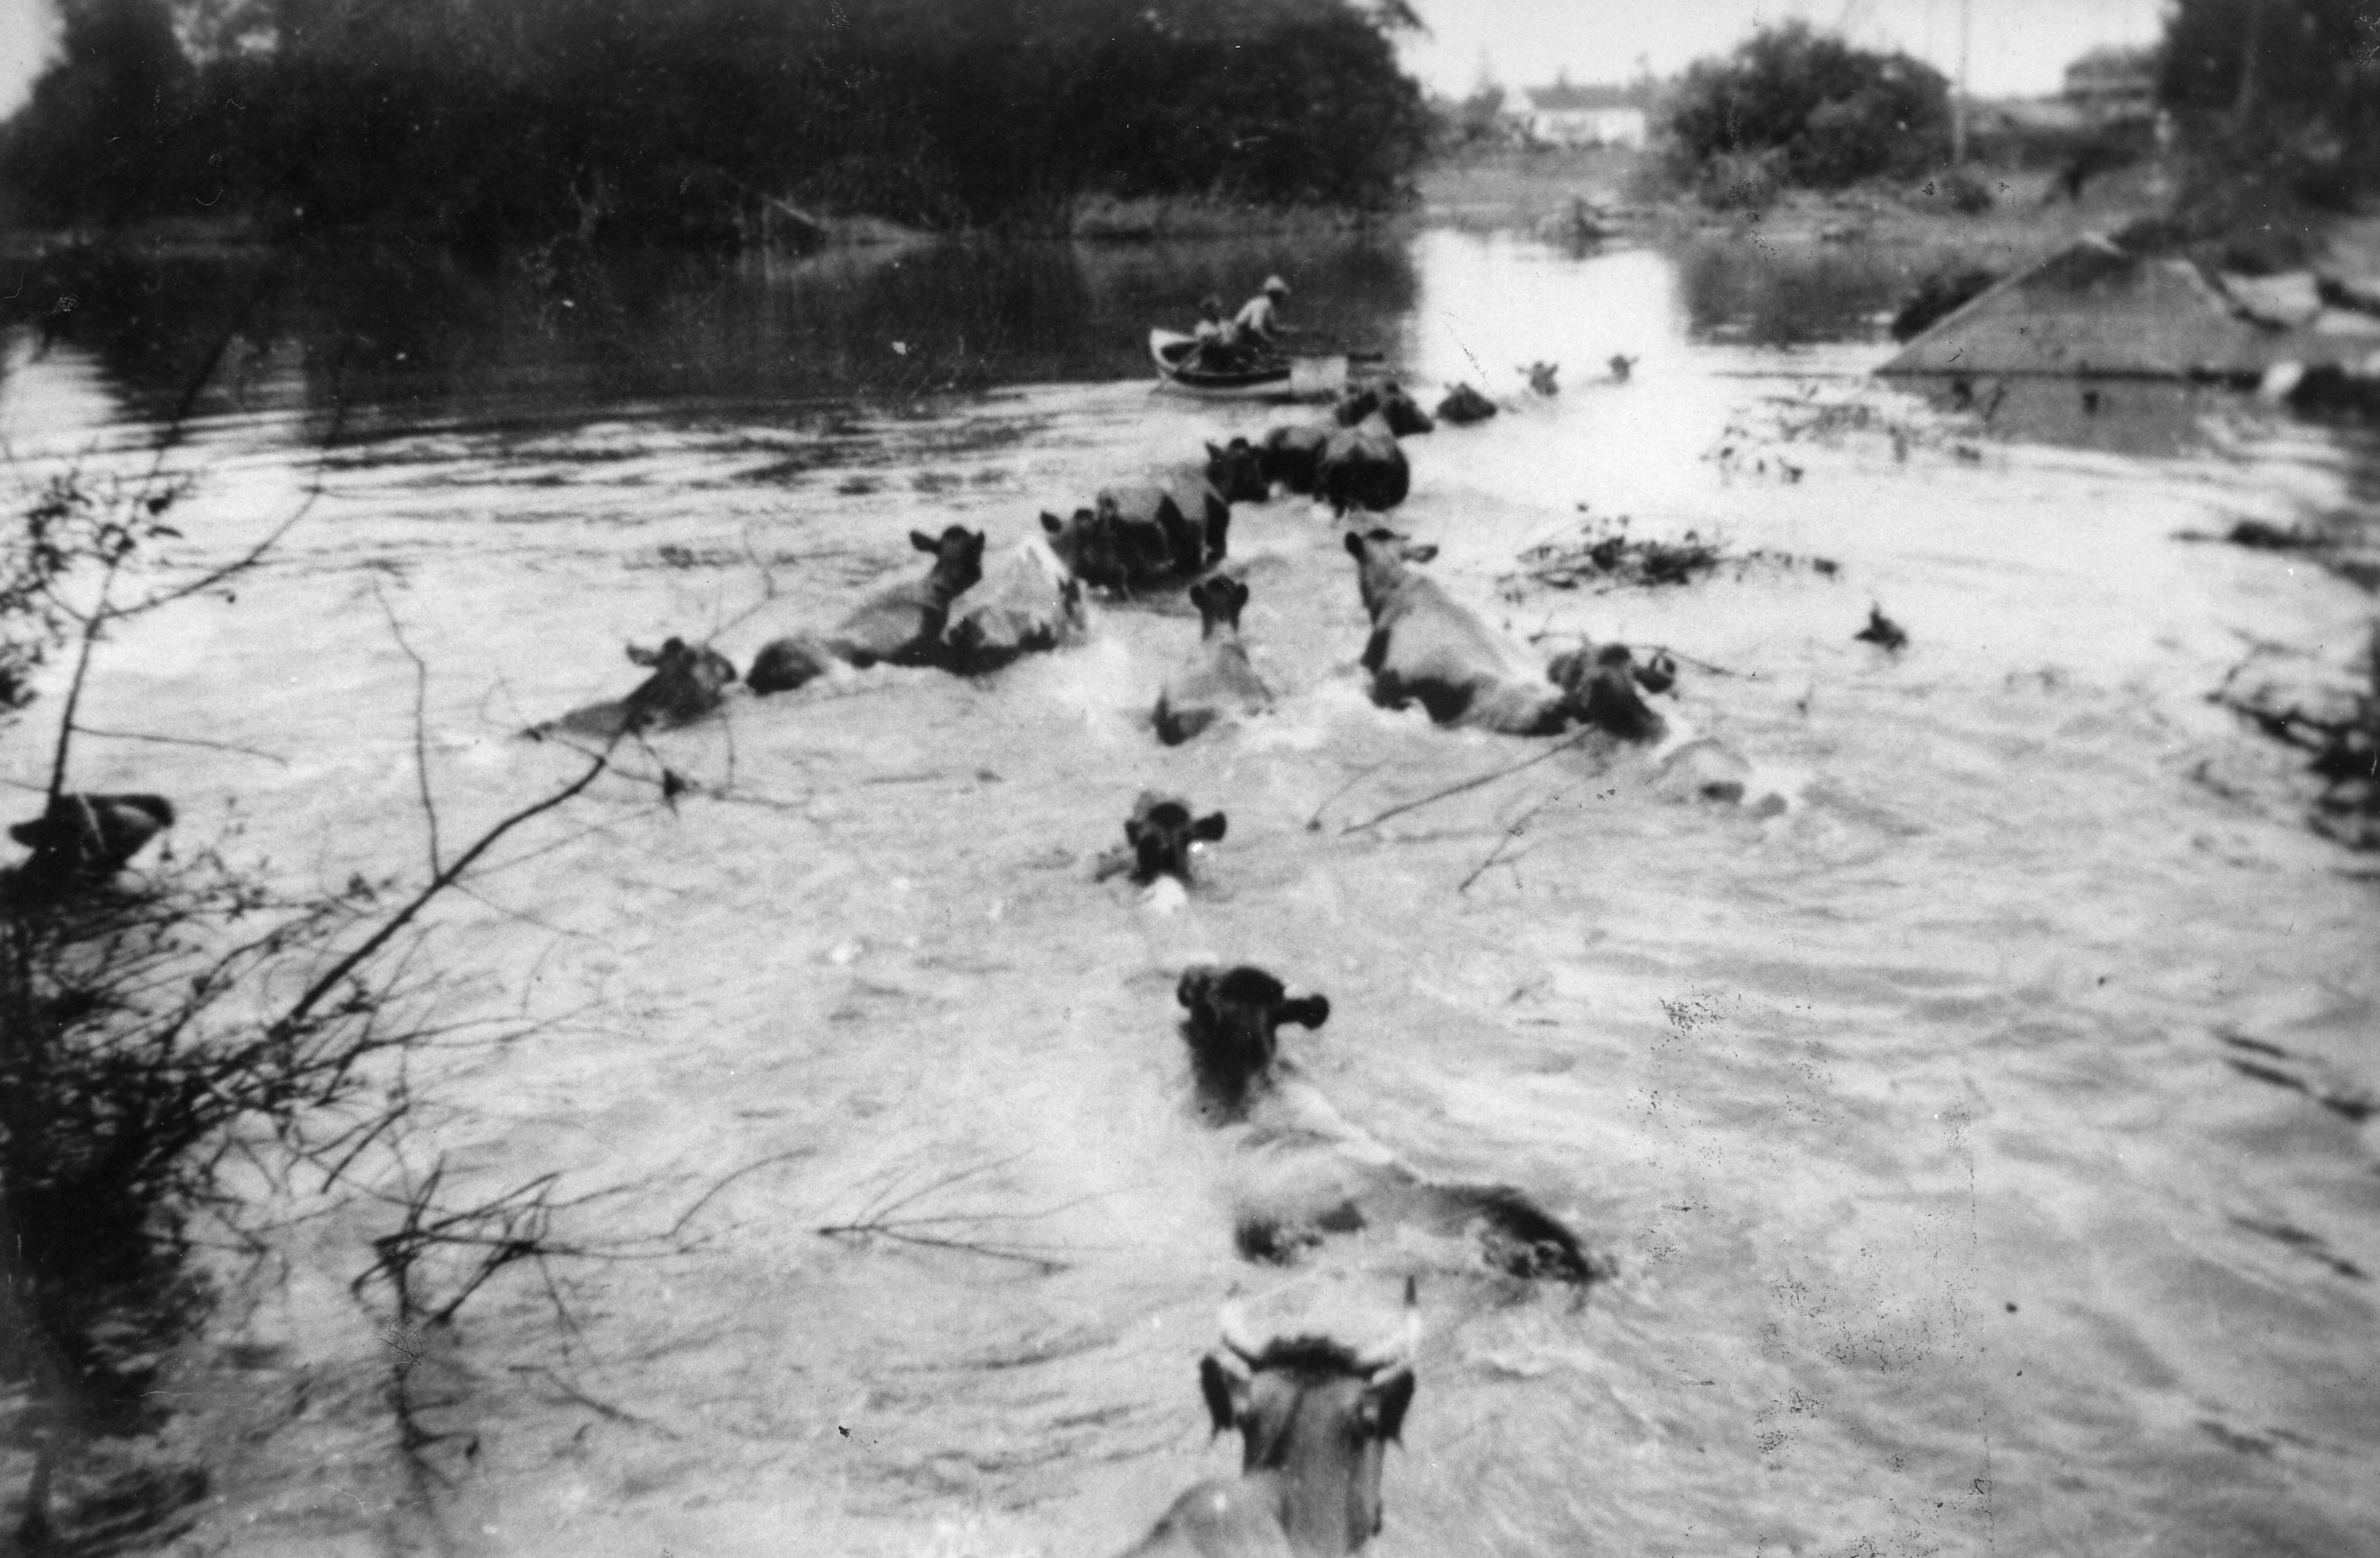 Black and white photograph of cows swimming across flooded farm land, following a row boat.